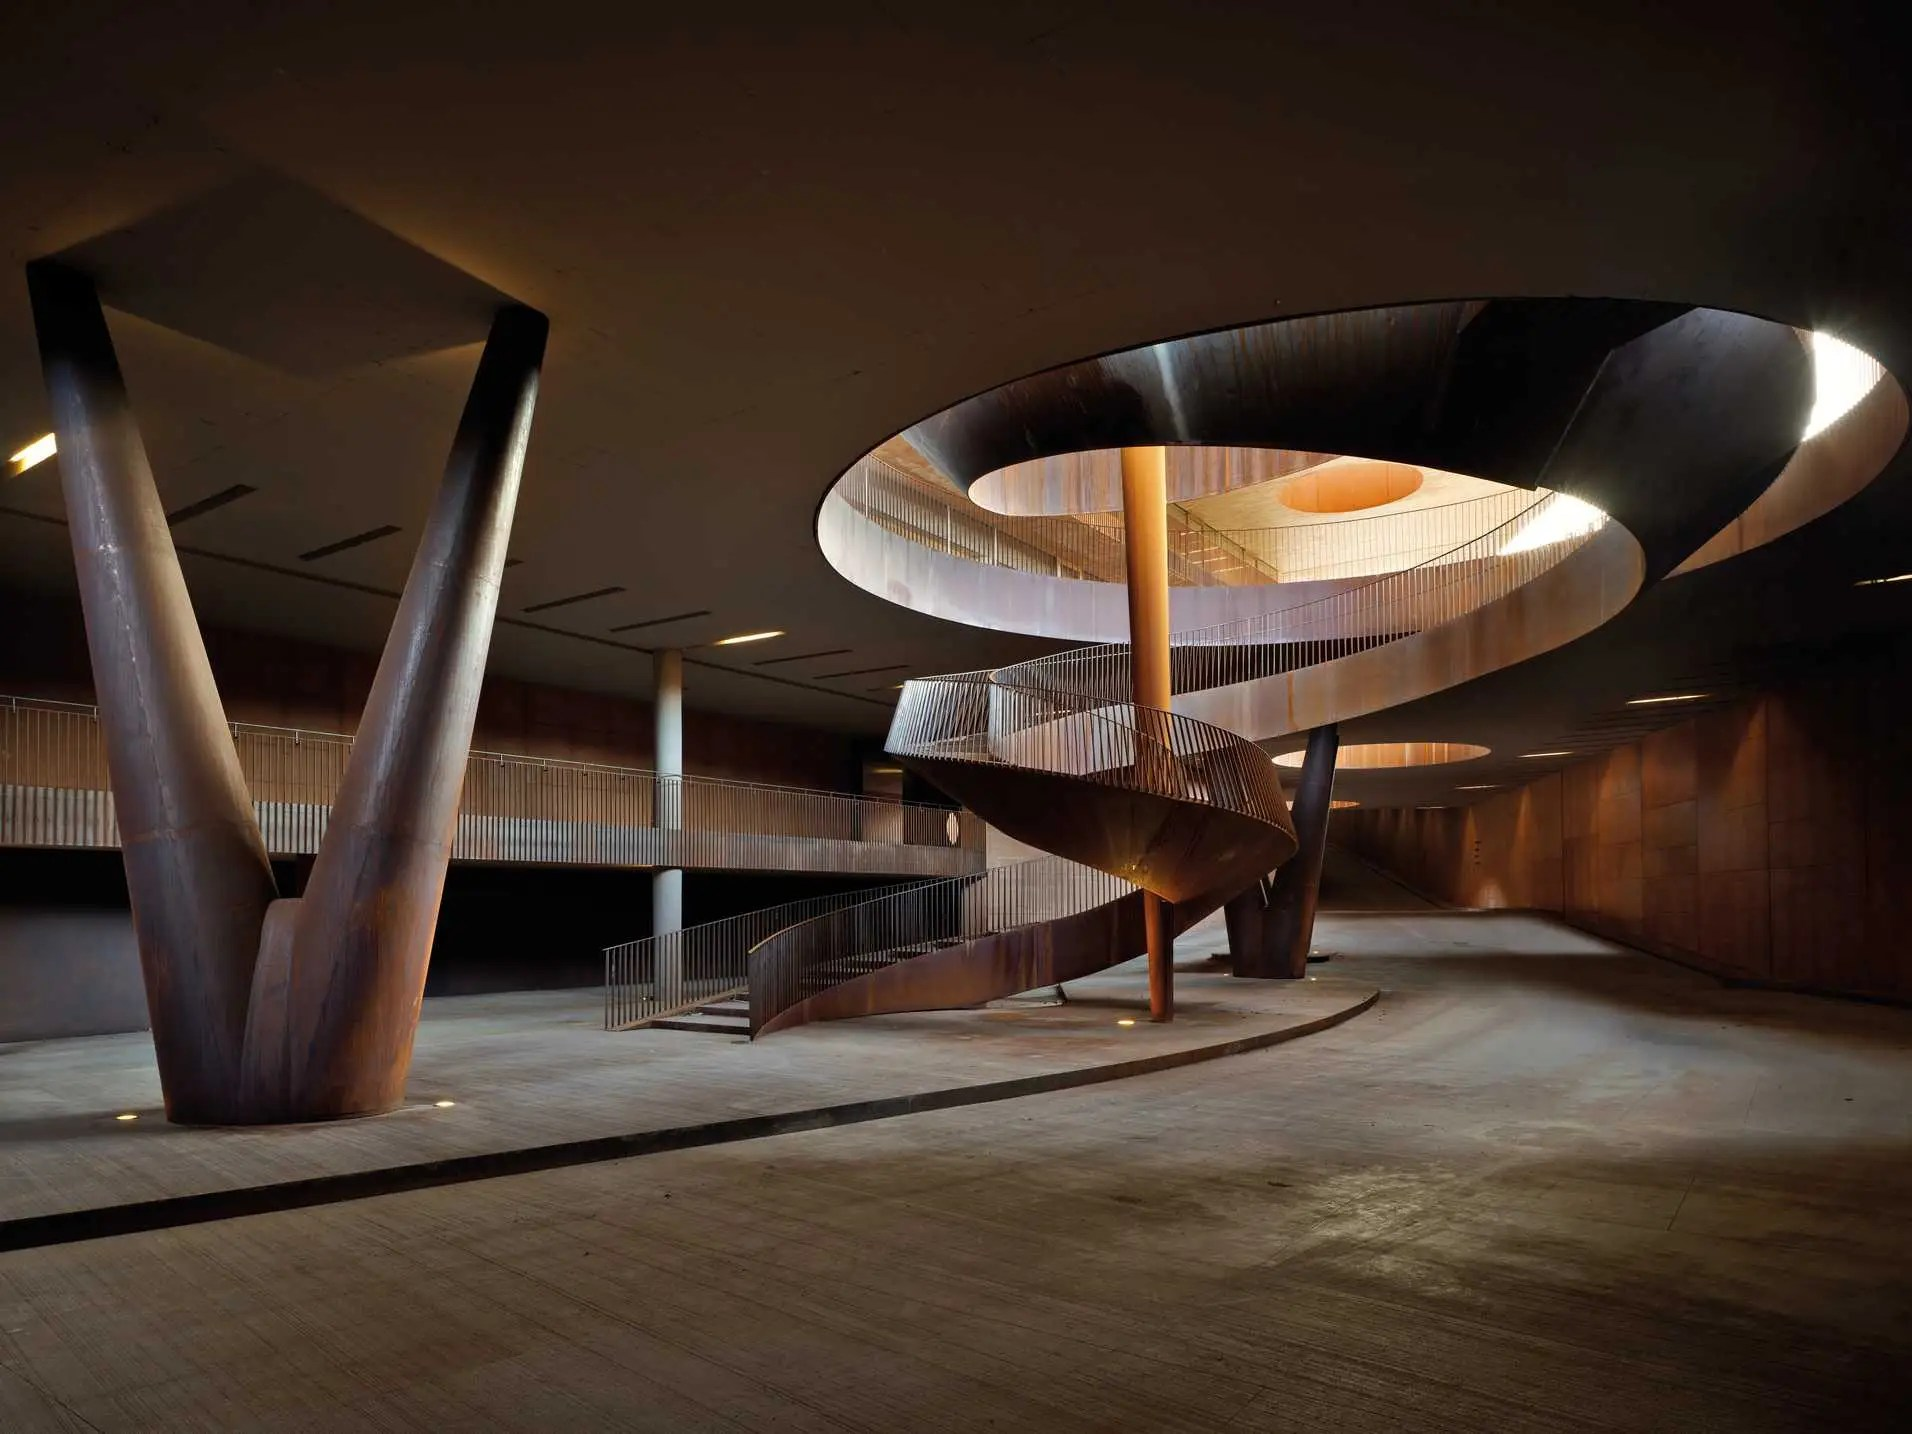 BEST INDUSTRIAL ARCHITECTURE: Antinori Winery, a winemaking complex near Florence, Italy.